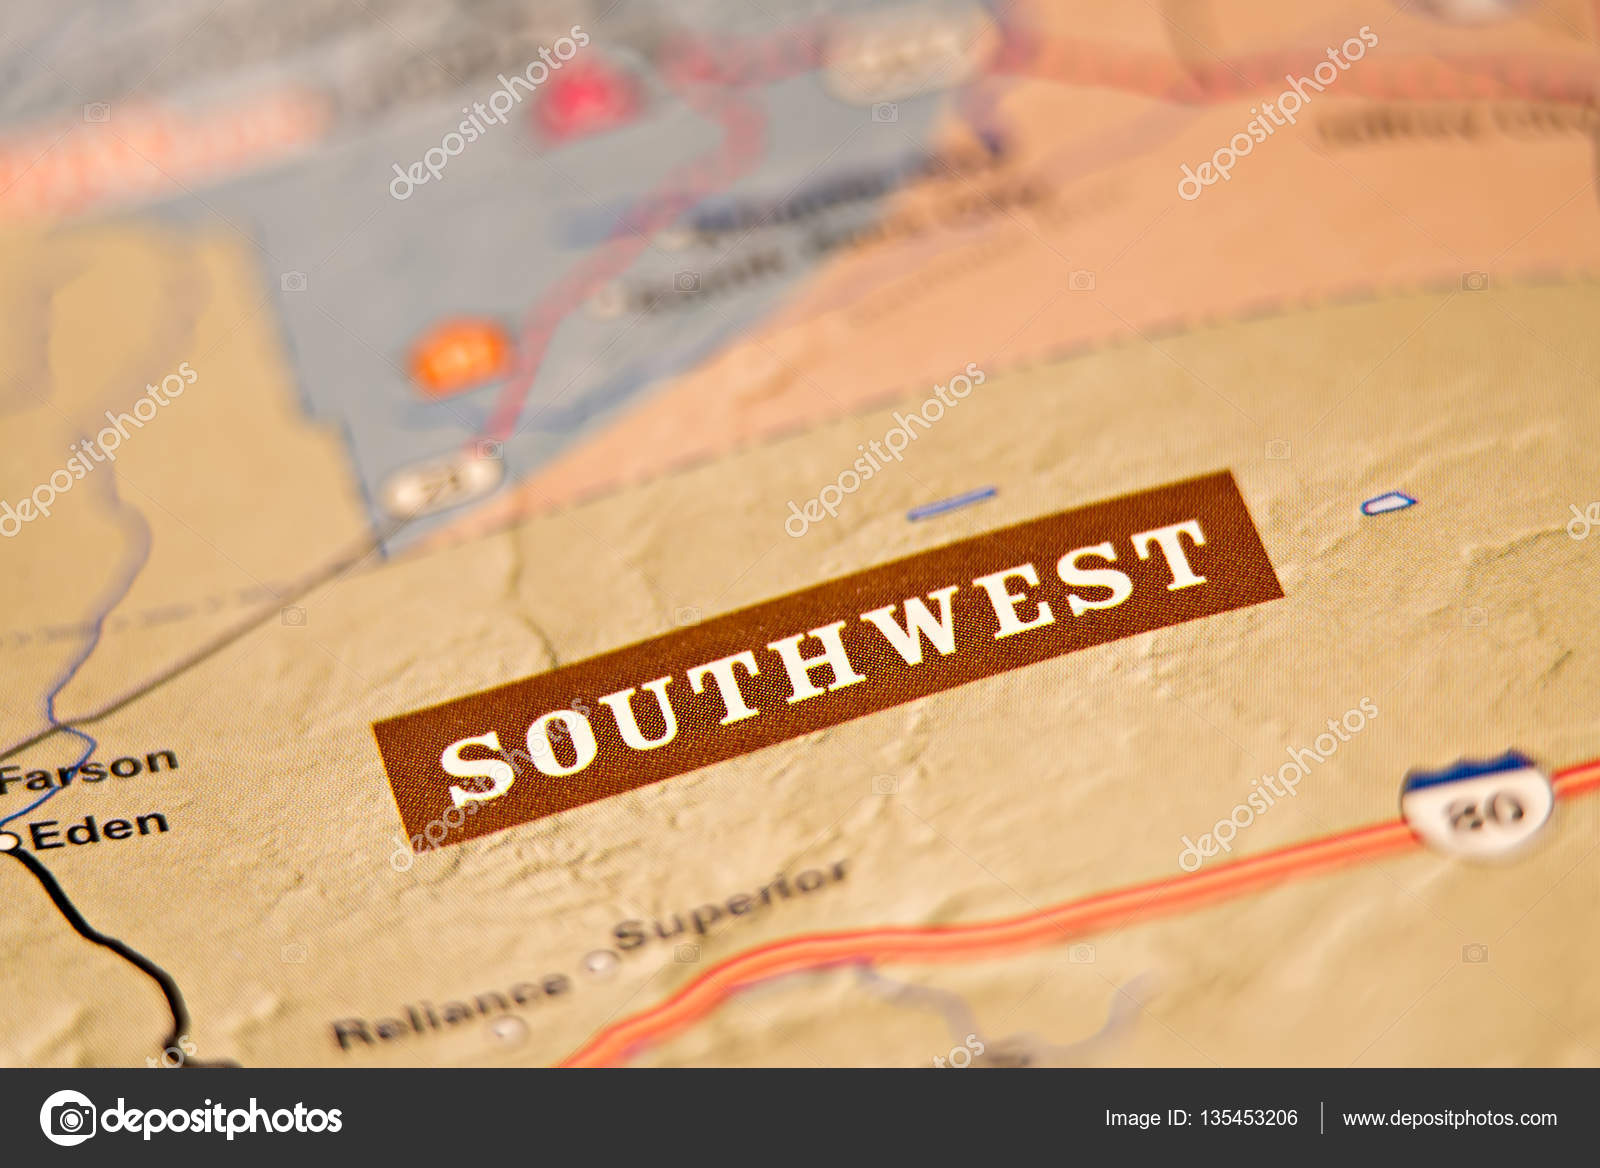 Southwest America Map.Southwest America Location Area Map Stock Photo C Digidream 135453206